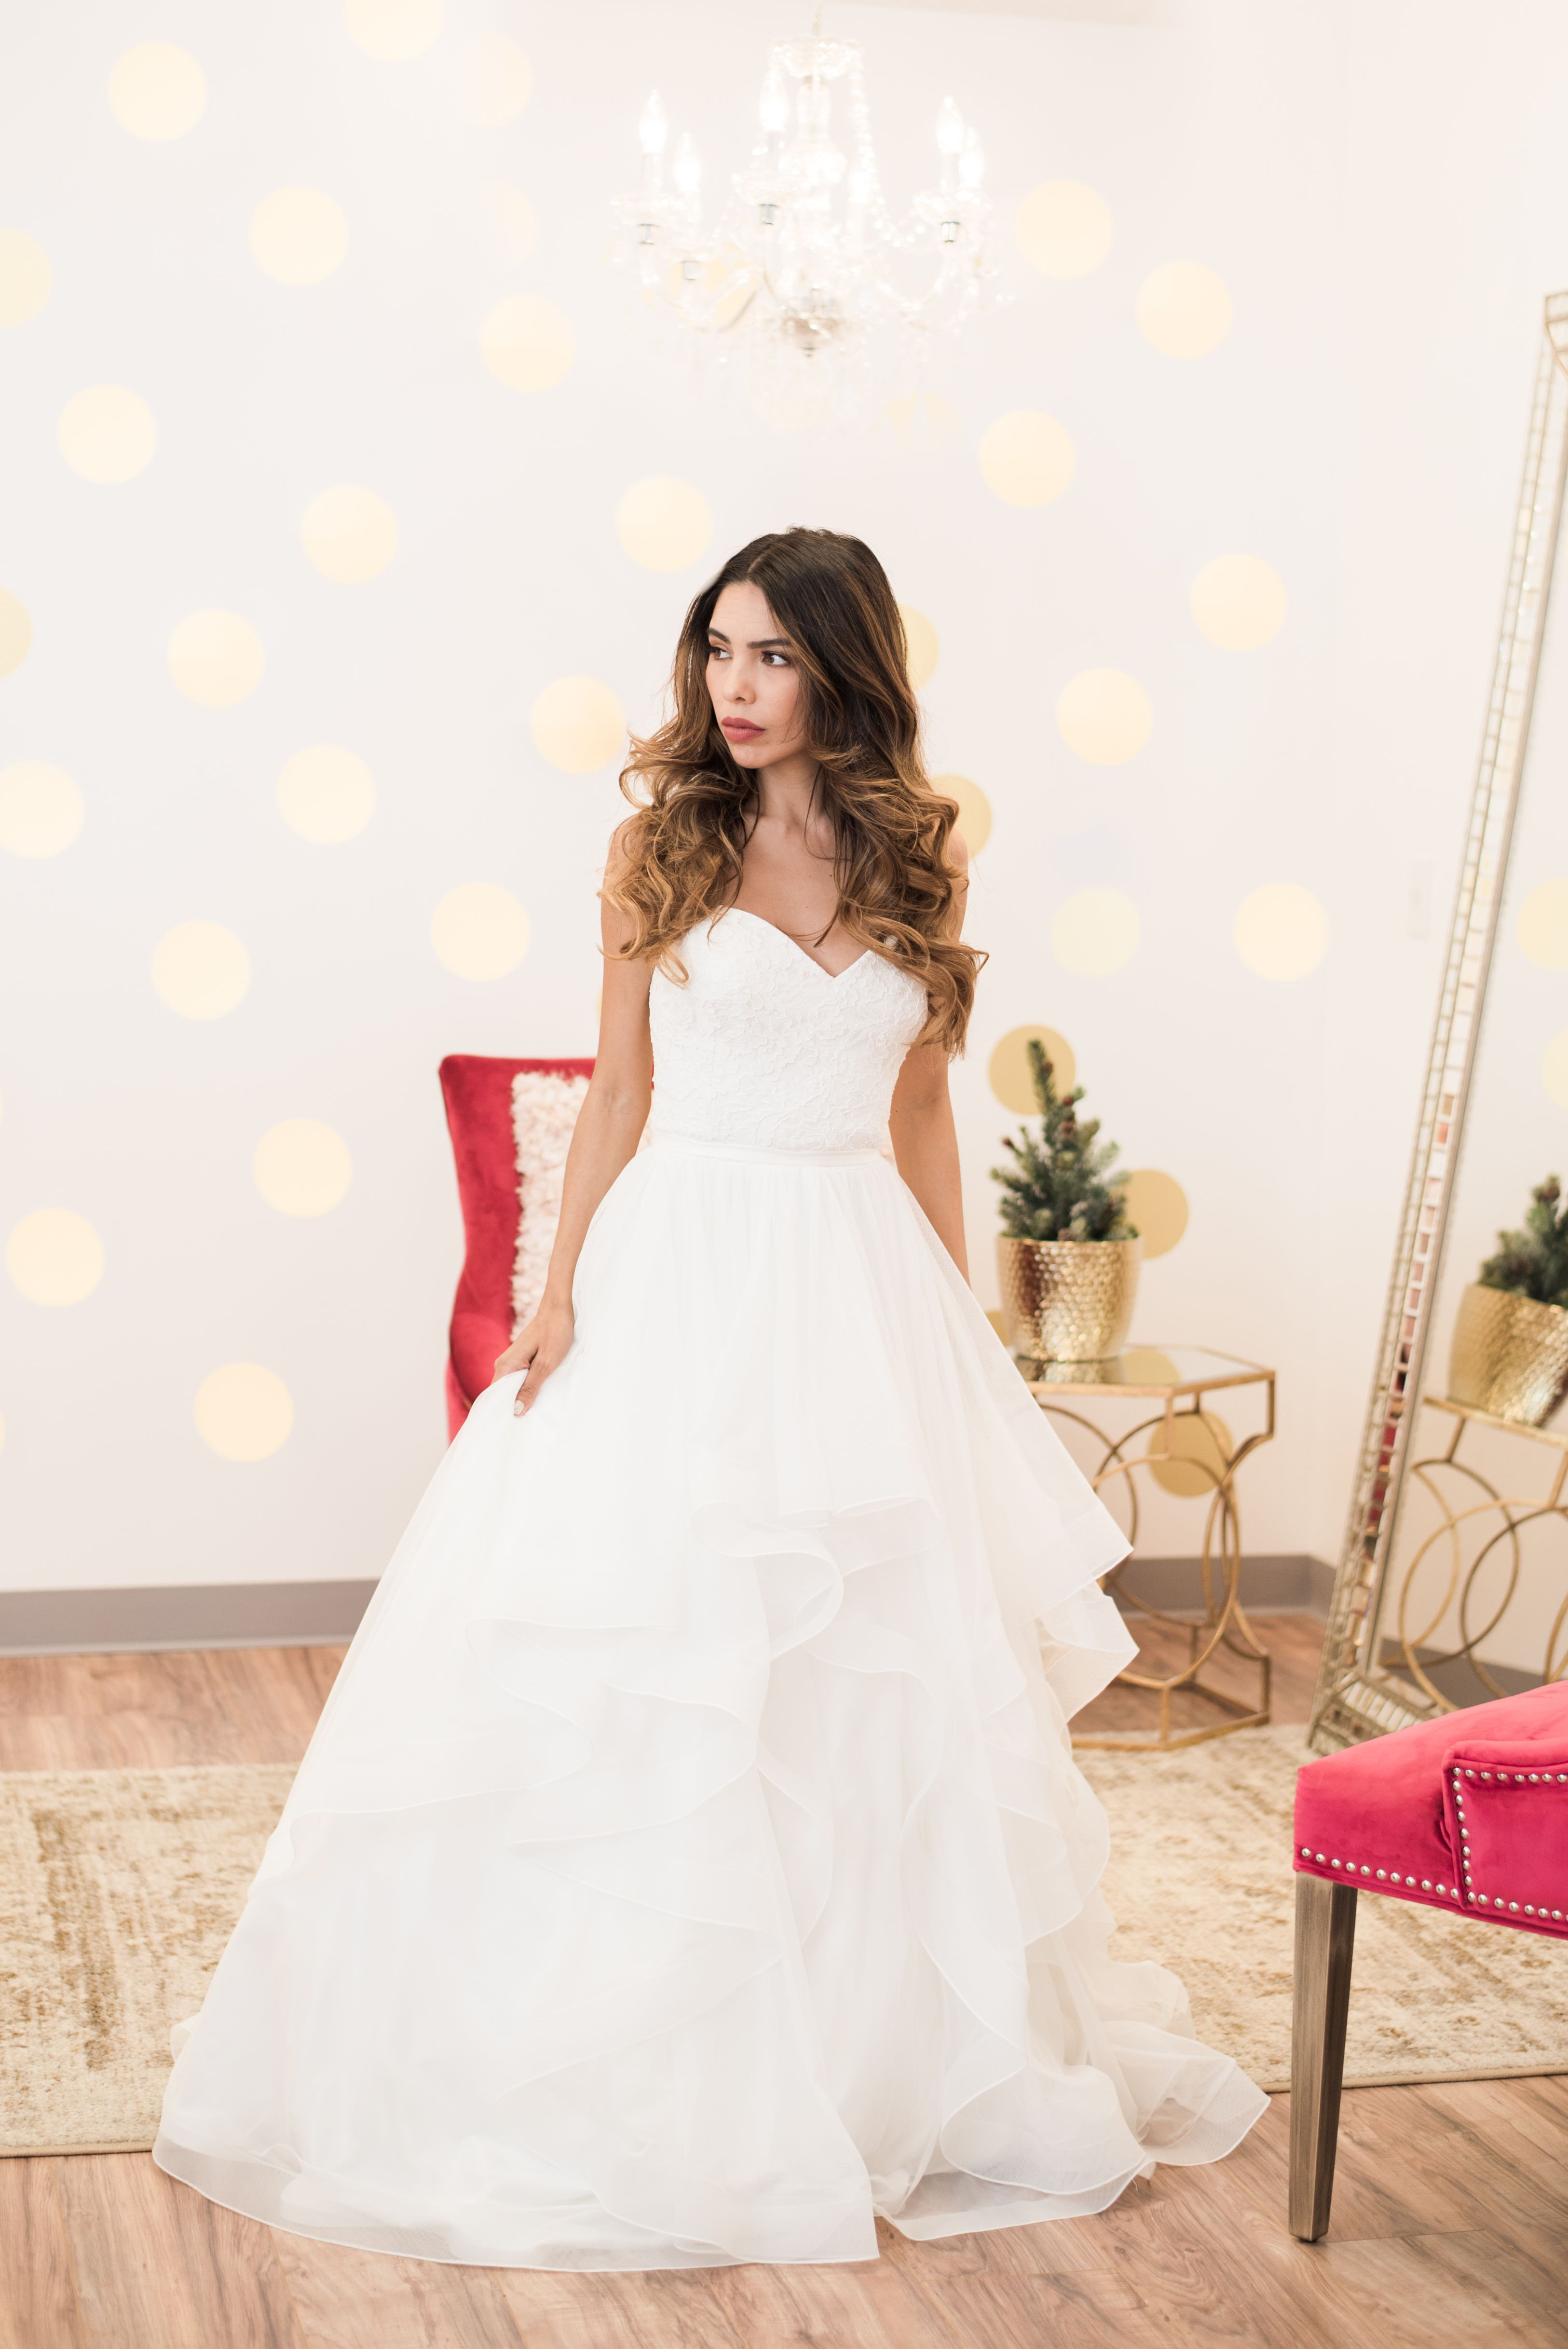 Bride Studio Is Arizona S Trendsetting Bridal Offering A Variety Of Wedding Gowns From Timeless To Modern Designs You Are Sure Find Your Dream